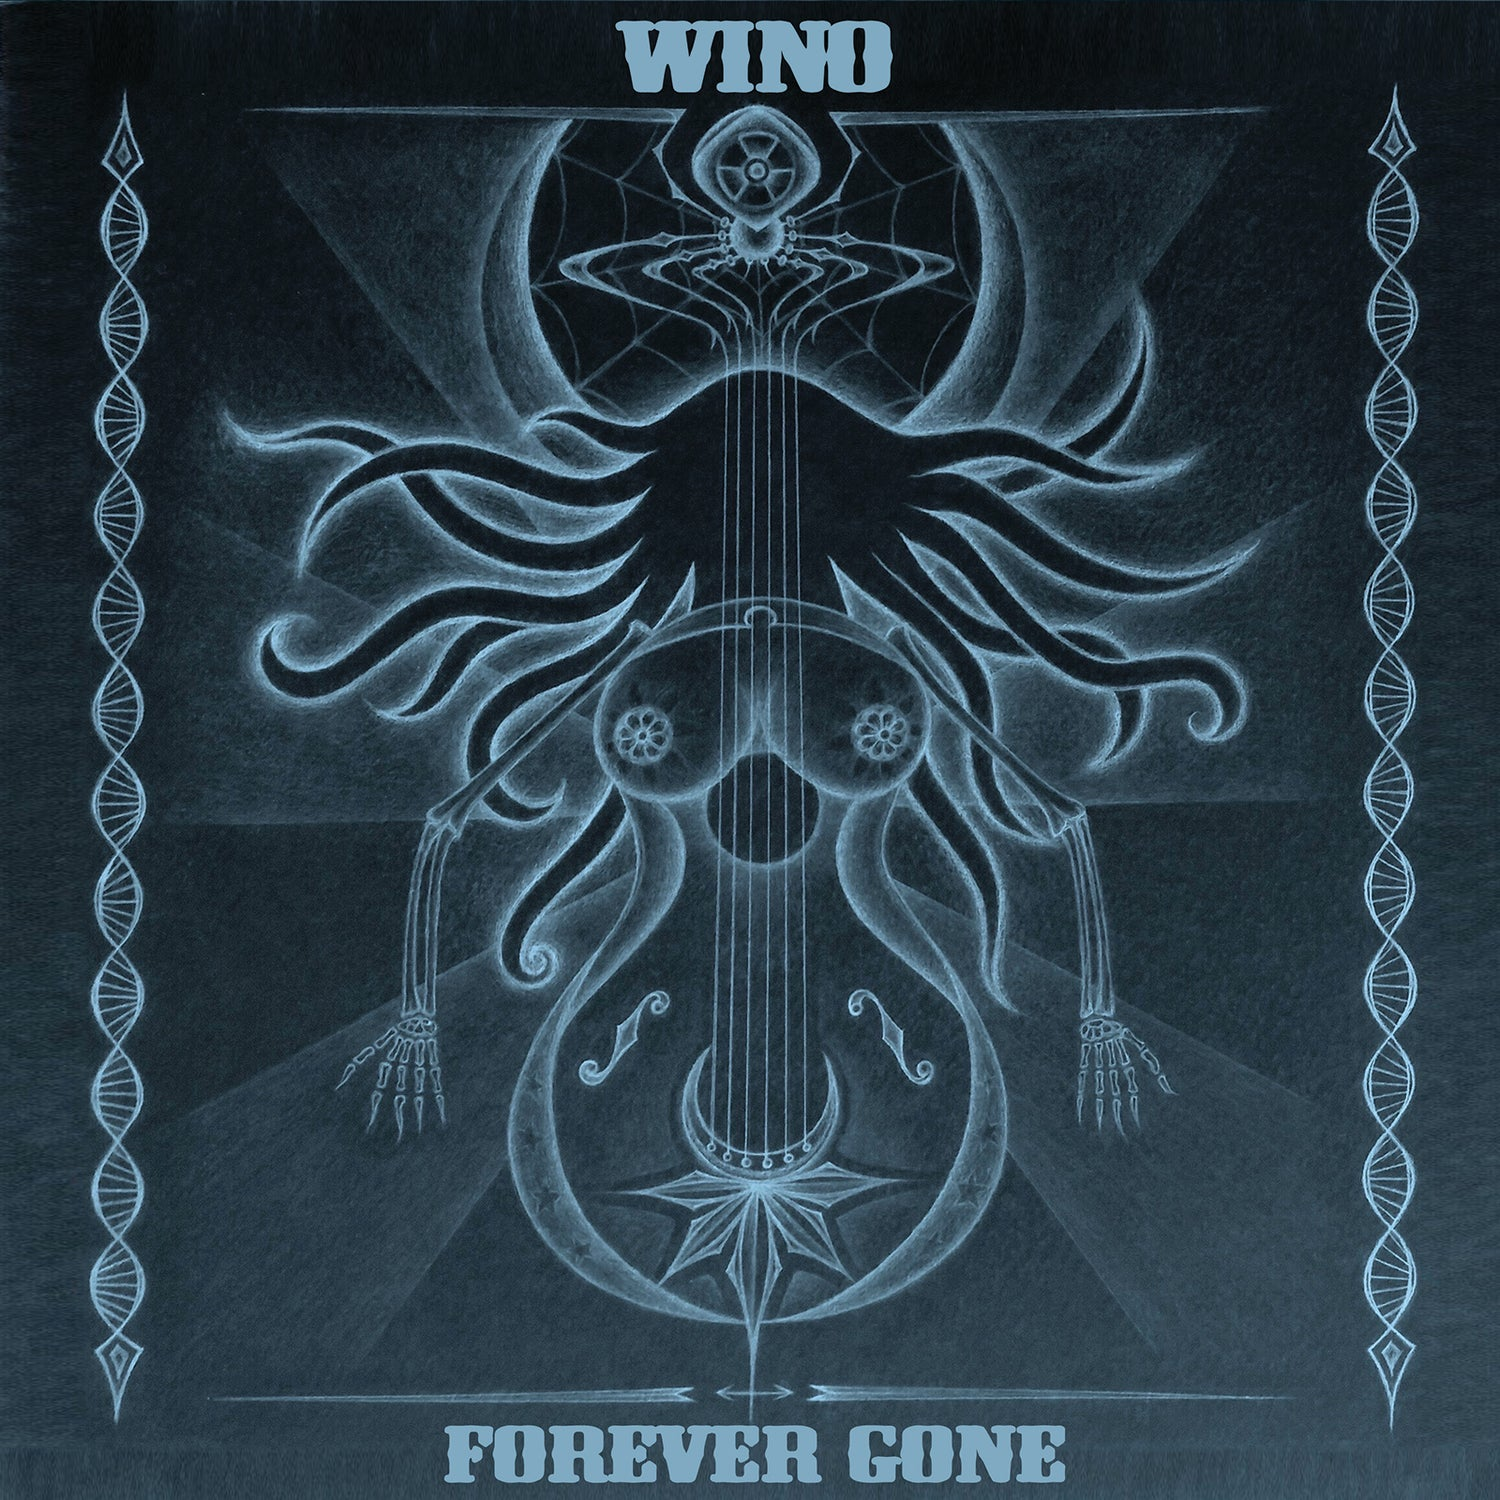 Image of Wino - Forever Gone Limited Edition Digipak CD